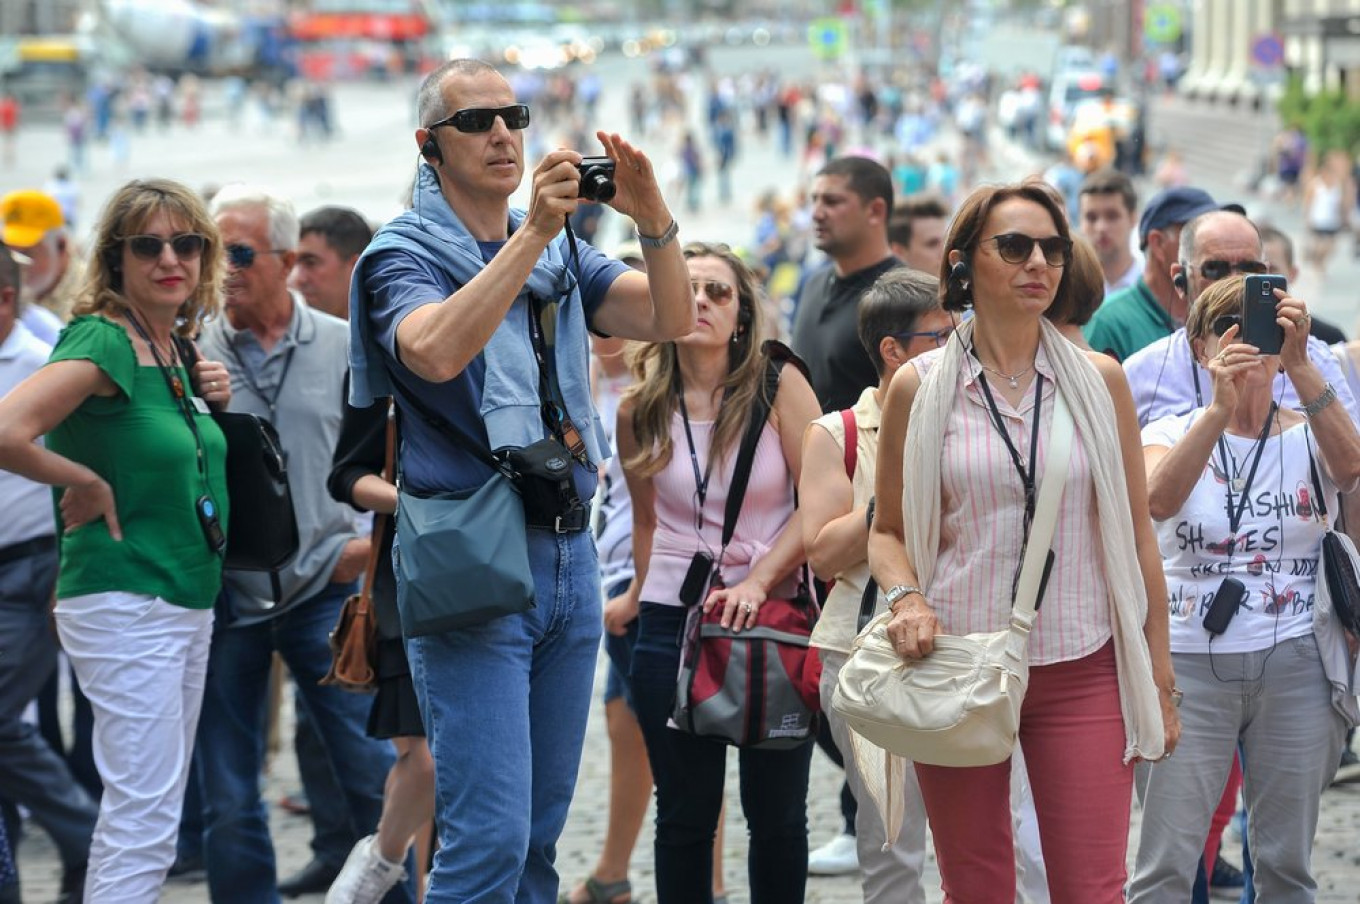 Locals across Europe may rejoice at fewer tourists crowding city streets, but for those who make a living from foreign travellers, the coronavirus could spell financial ruin. Andrei Lyubimov / Moskva News Agency